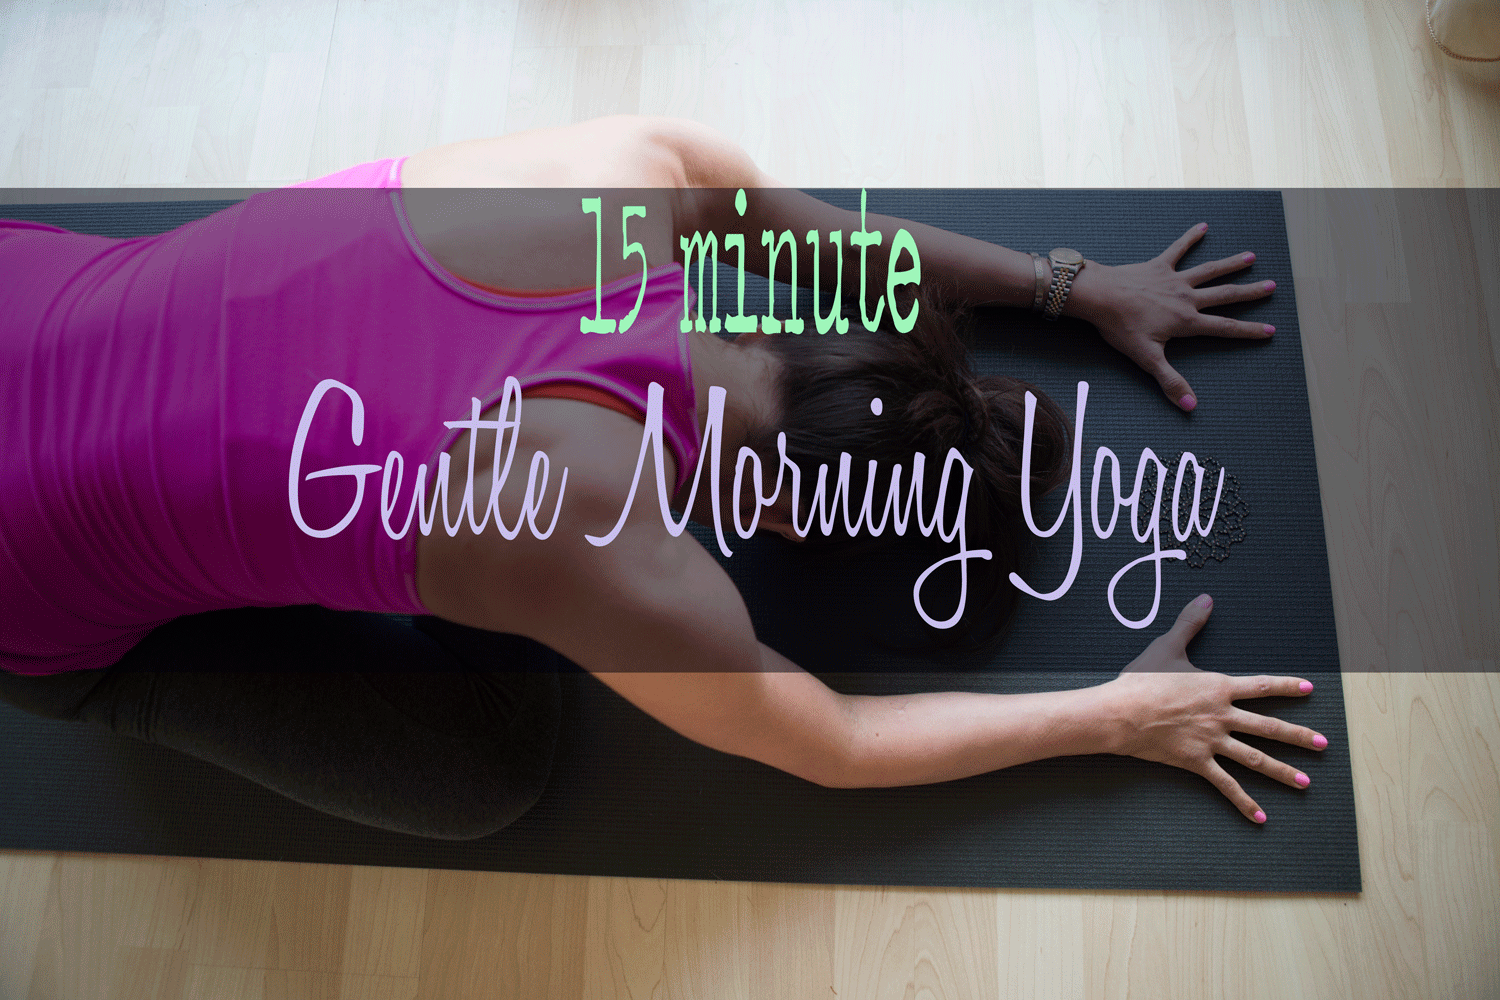 Pin it! 15 minute gentle morning yoga.